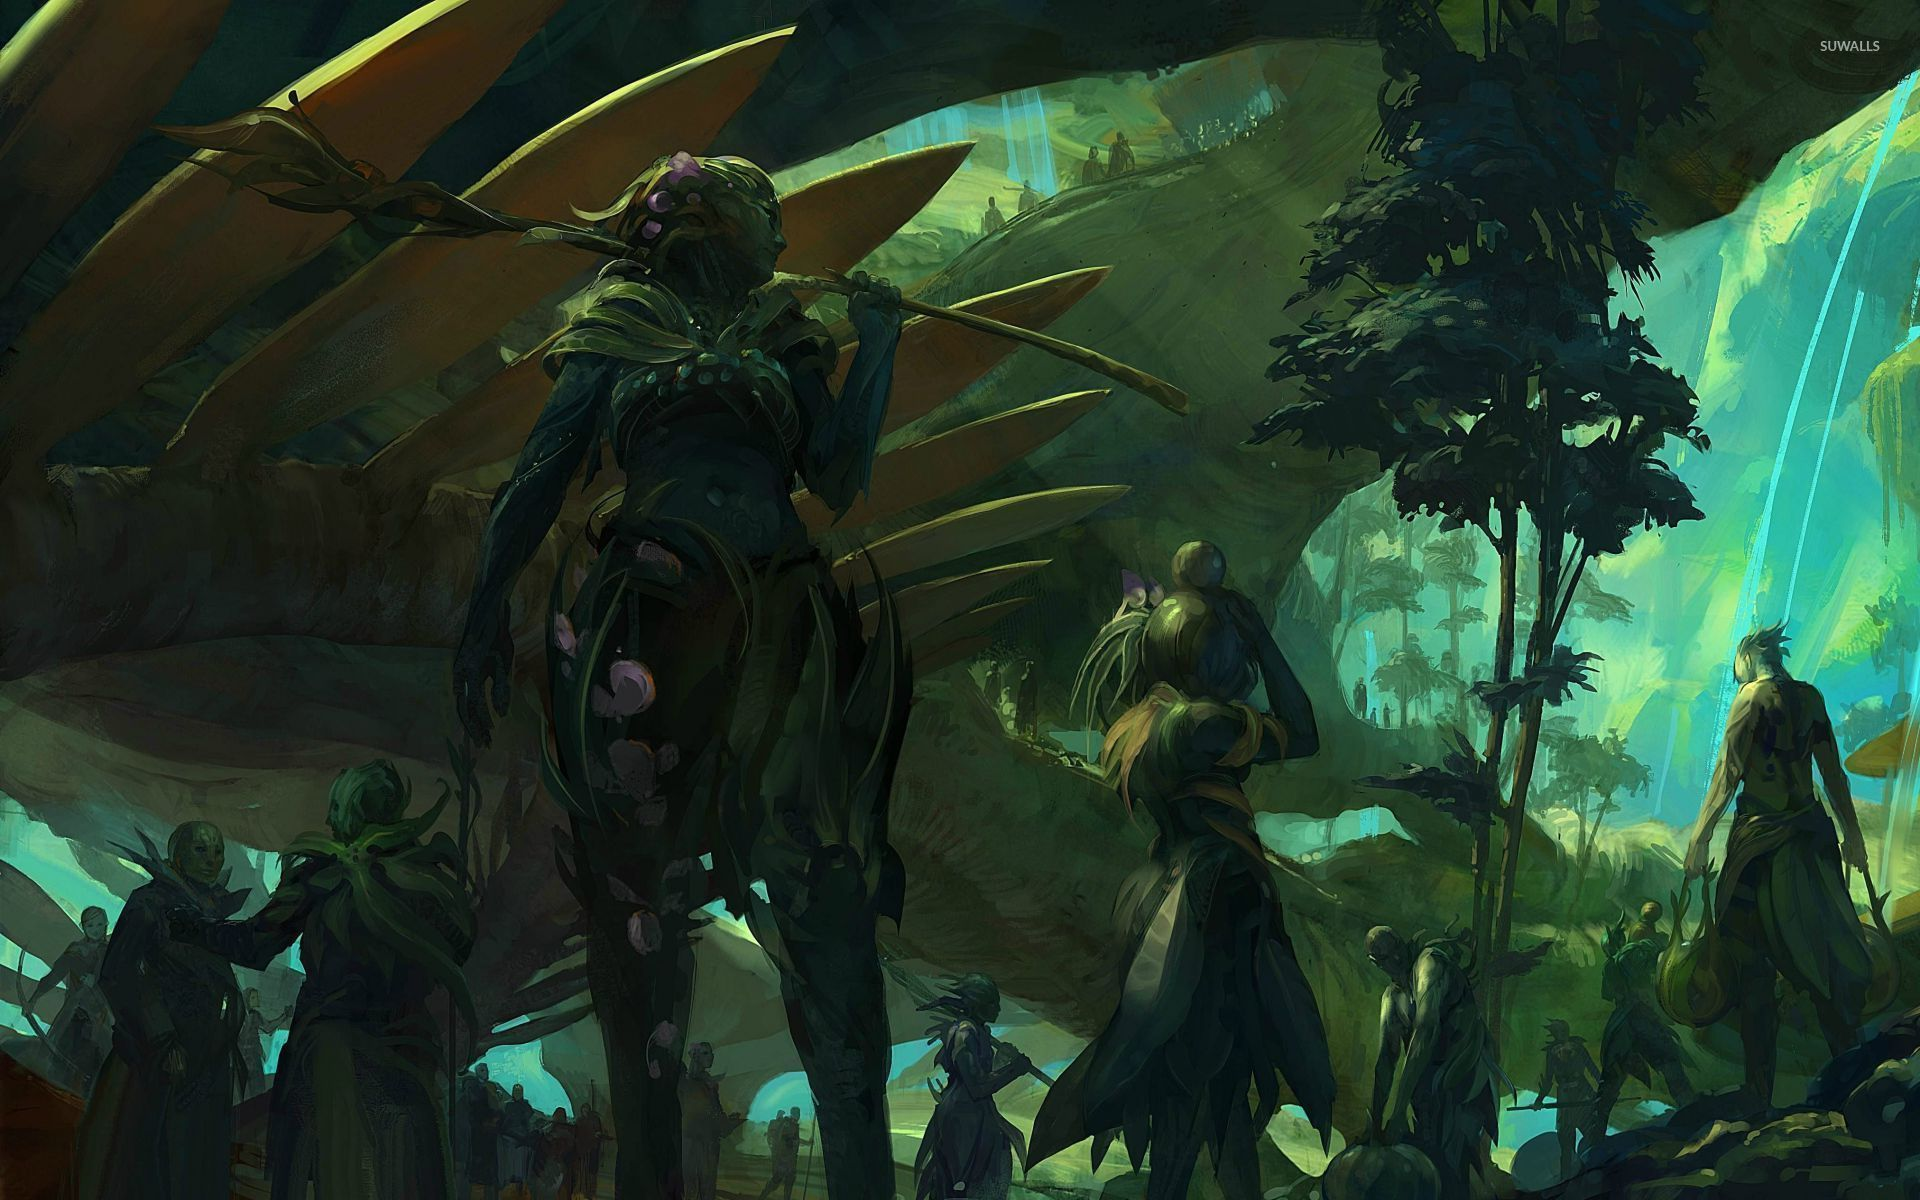 The Grove Guild Wars 2 Wallpaper Game Wallpapers 28700